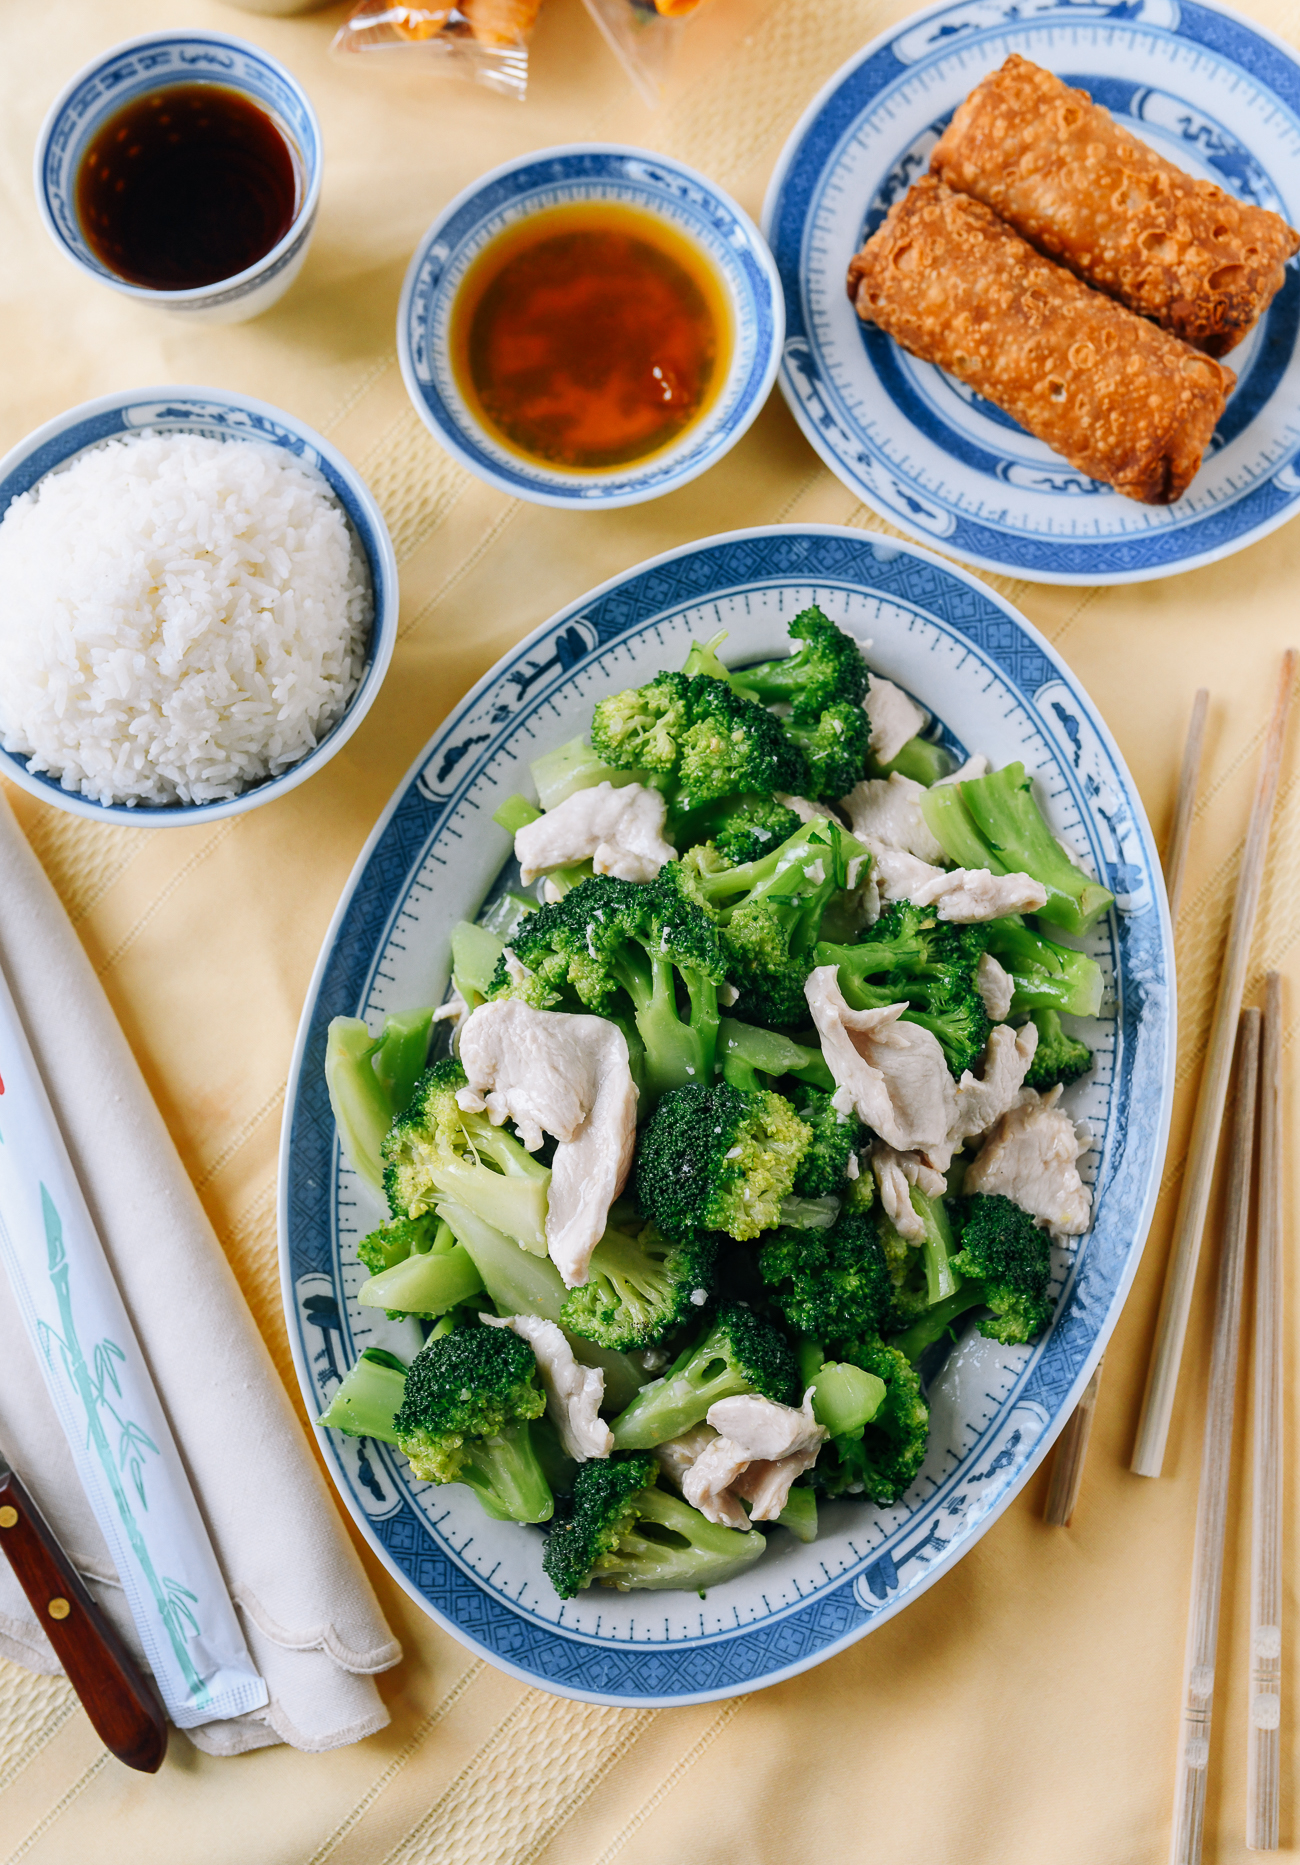 Chicken and Broccoli with White Sauce